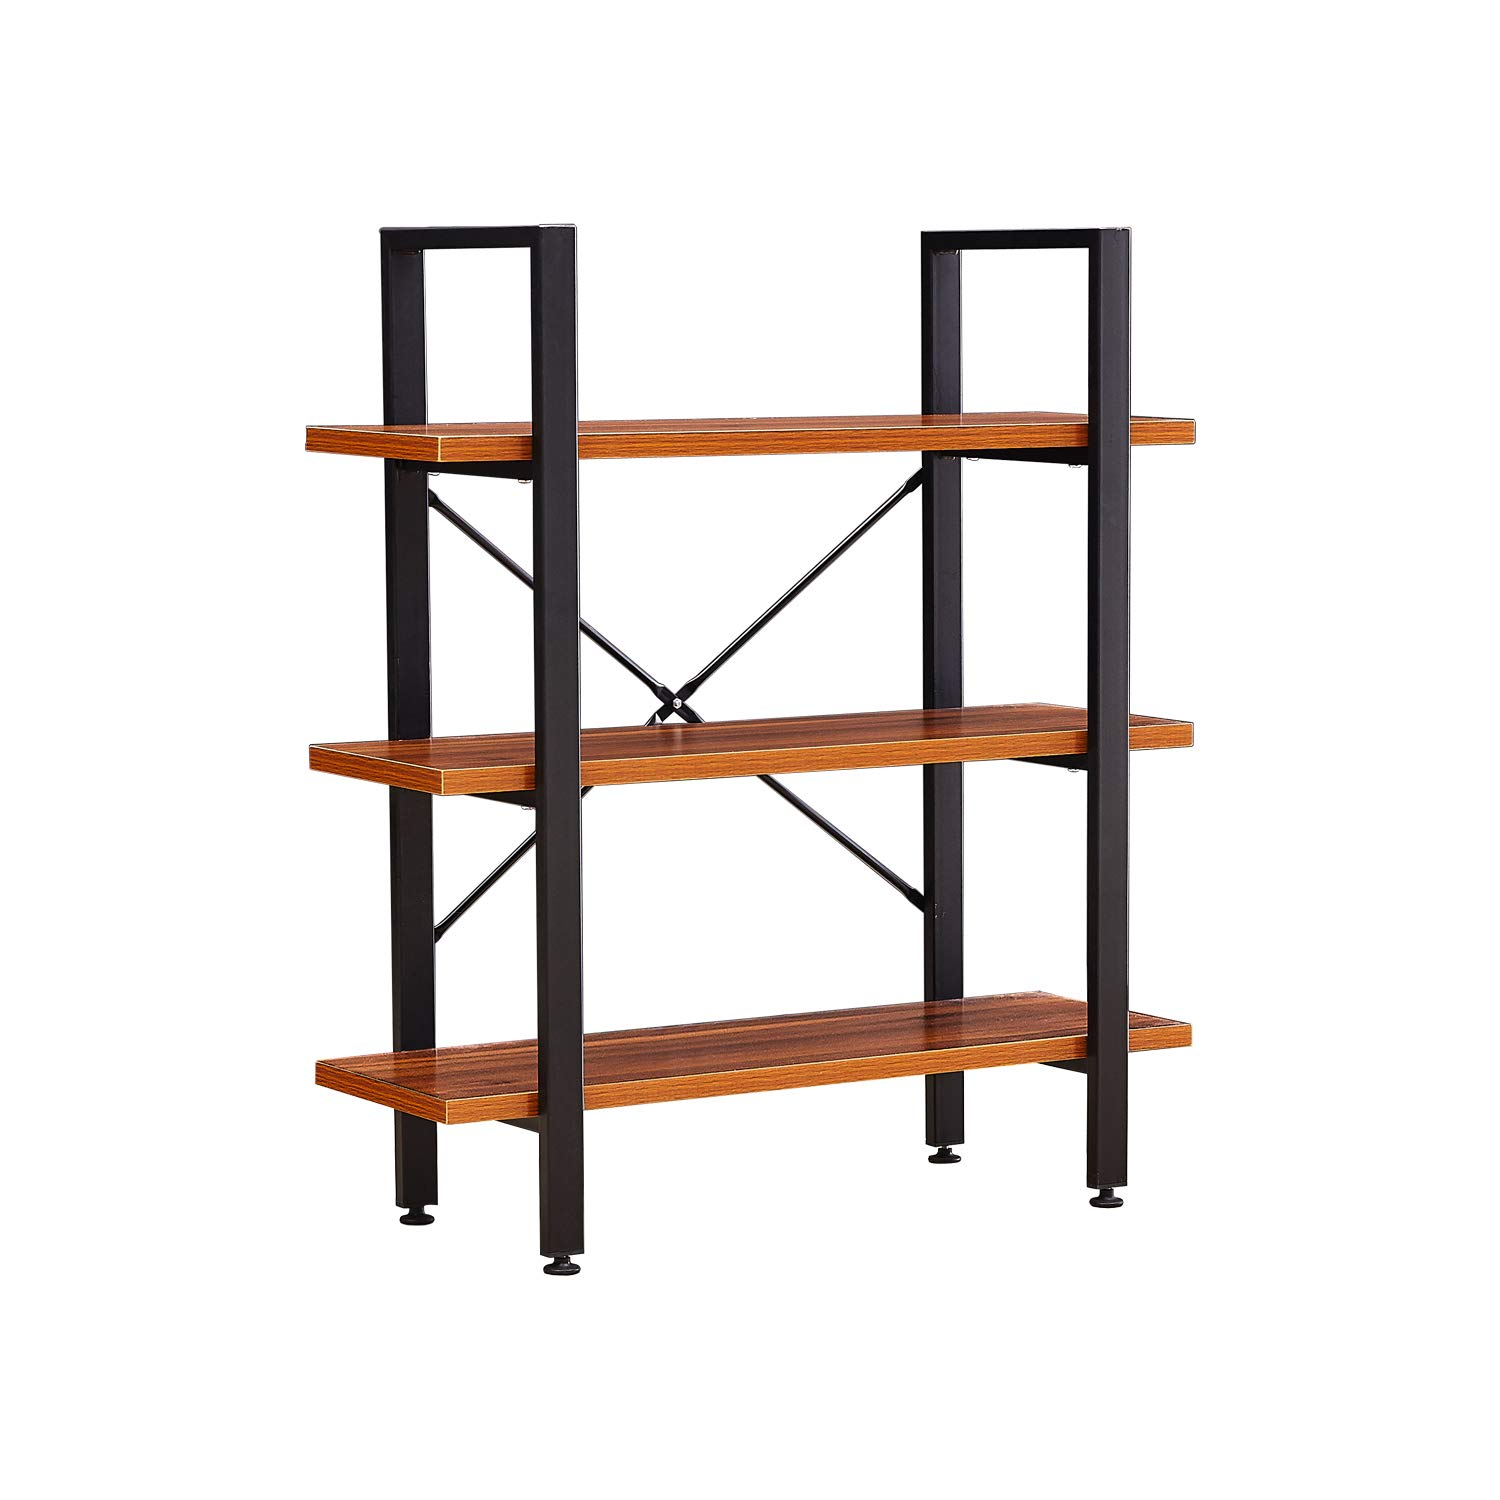 GreenForest 3 Tiers Bookshelf Wood and Metal Bookcase Industrial Style Open Etagere Storage Rack 35.43 inch x 11.3 inch x 40.1 inch Walnut